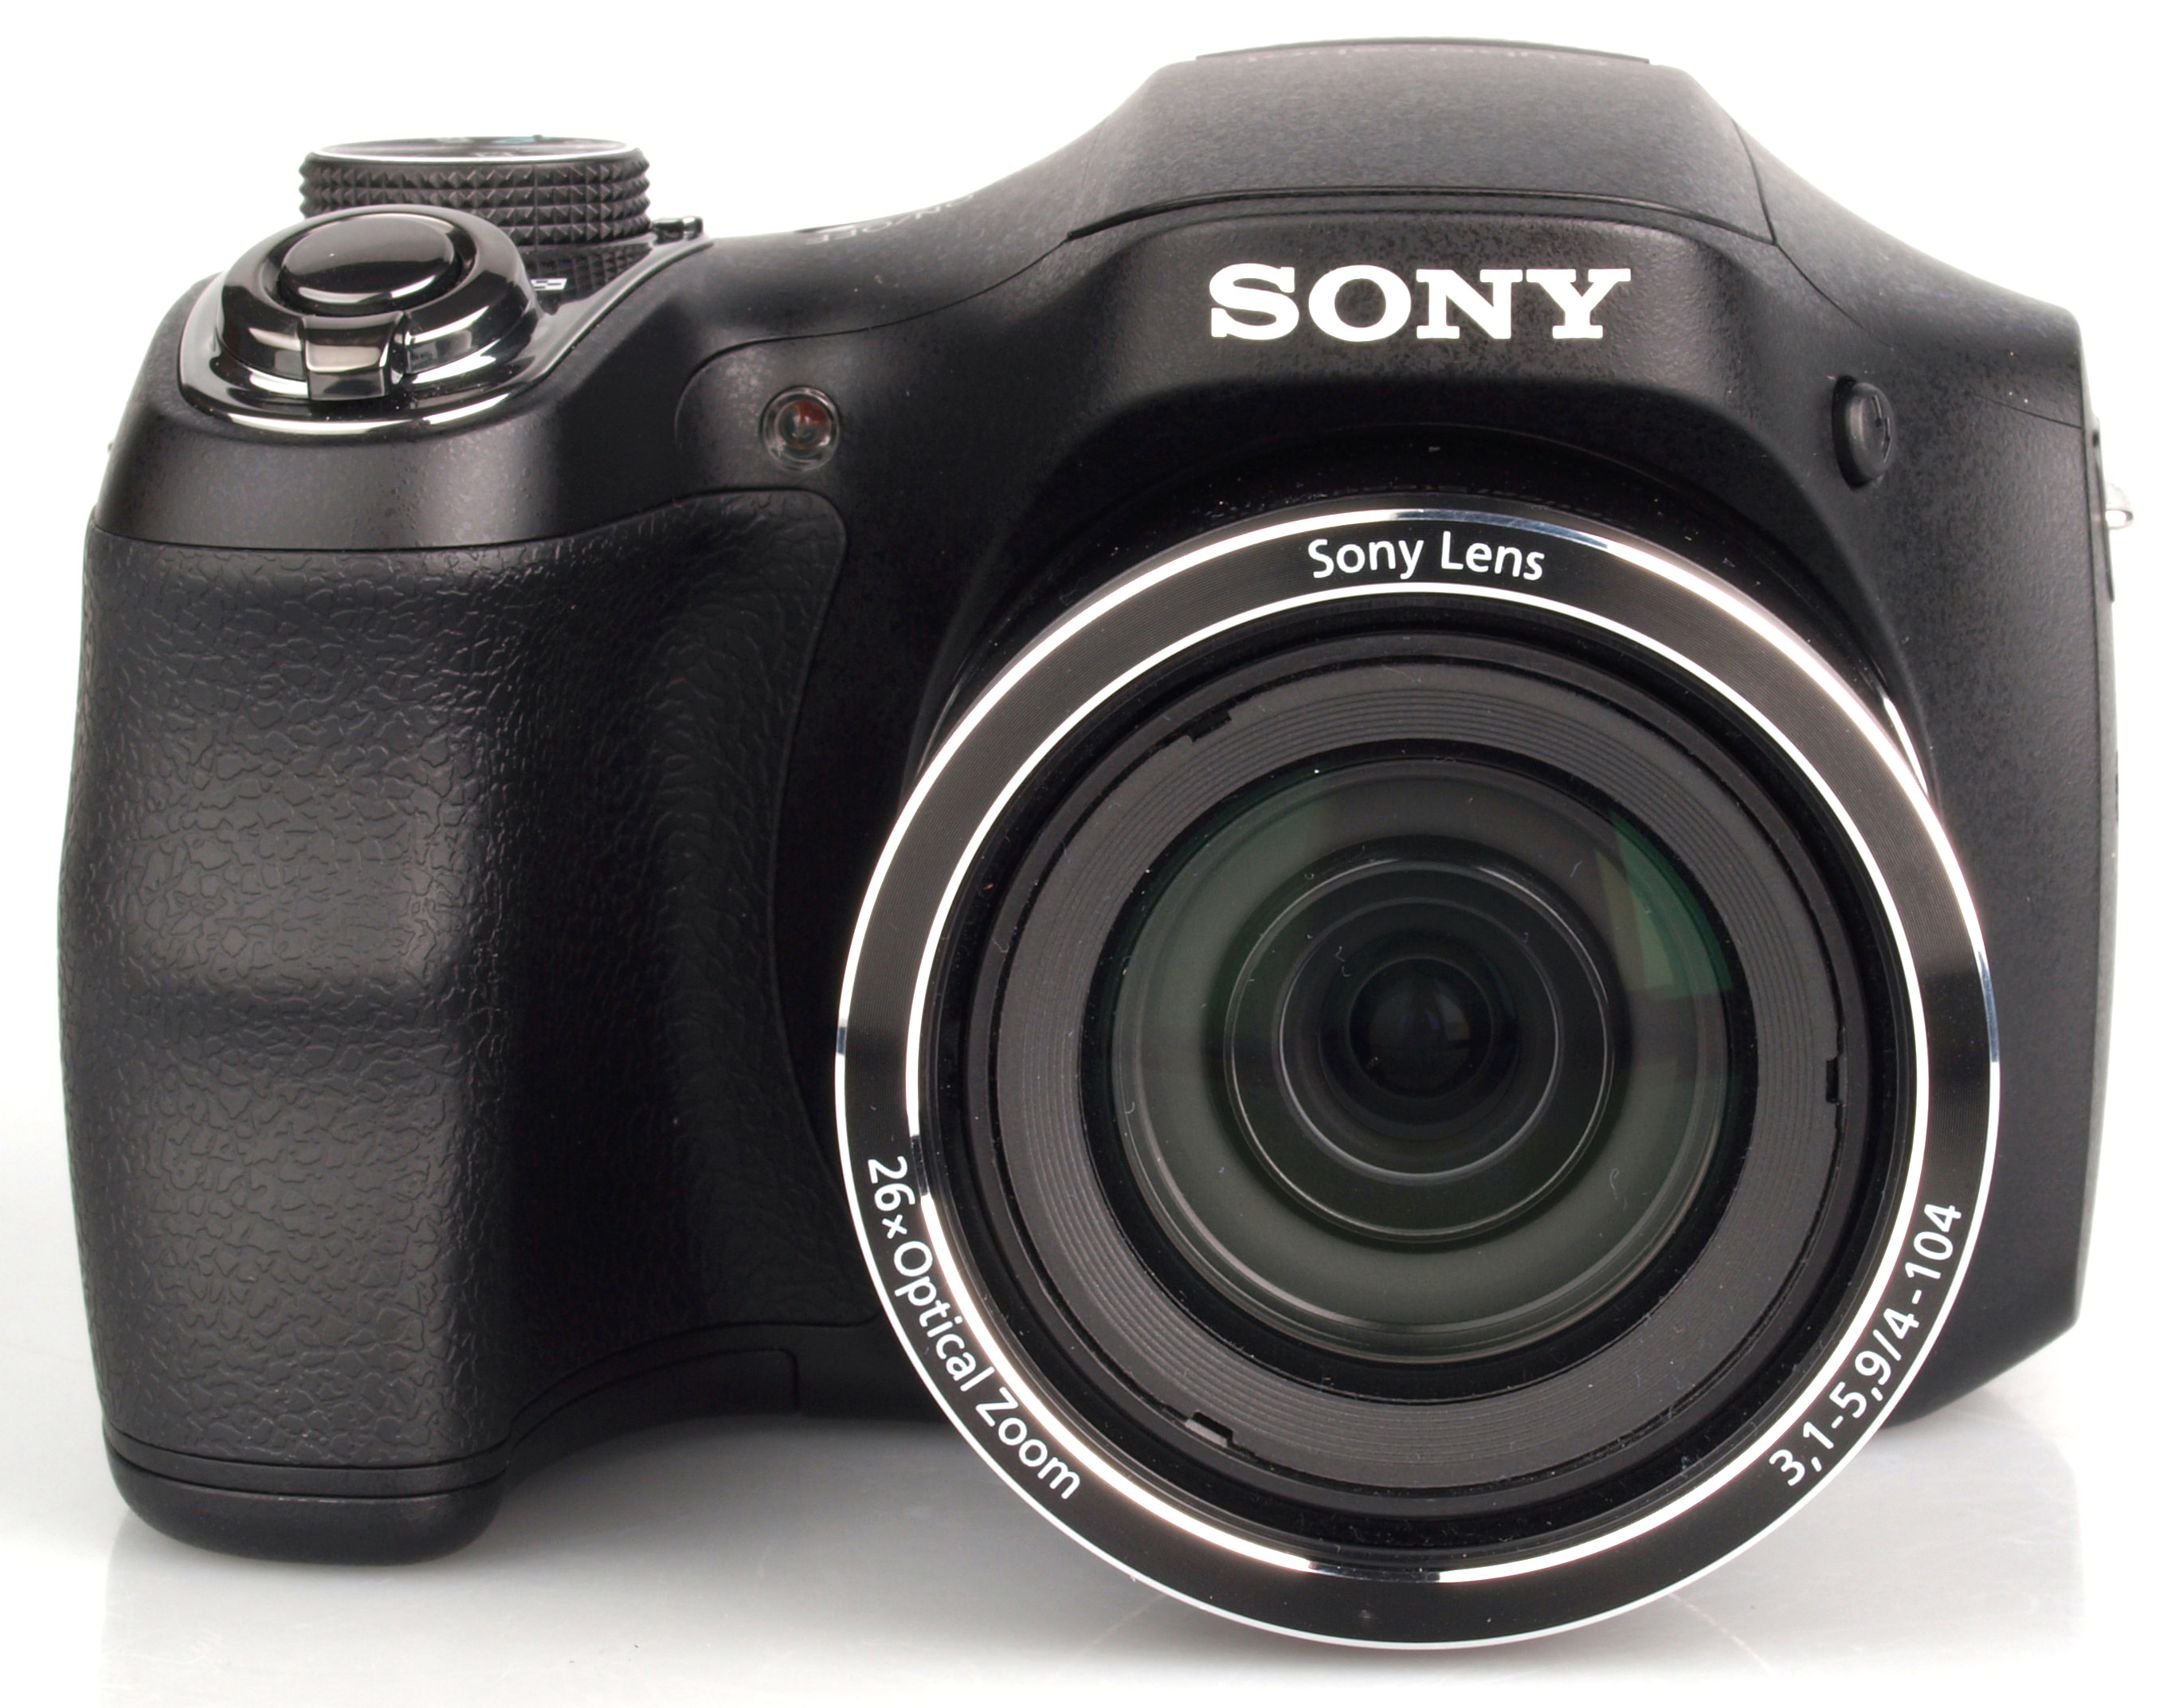 sony cyber shot dsc h200 review rh ephotozine com sony cyber shot user guide sony cyber shot user manual dsc-rx1r